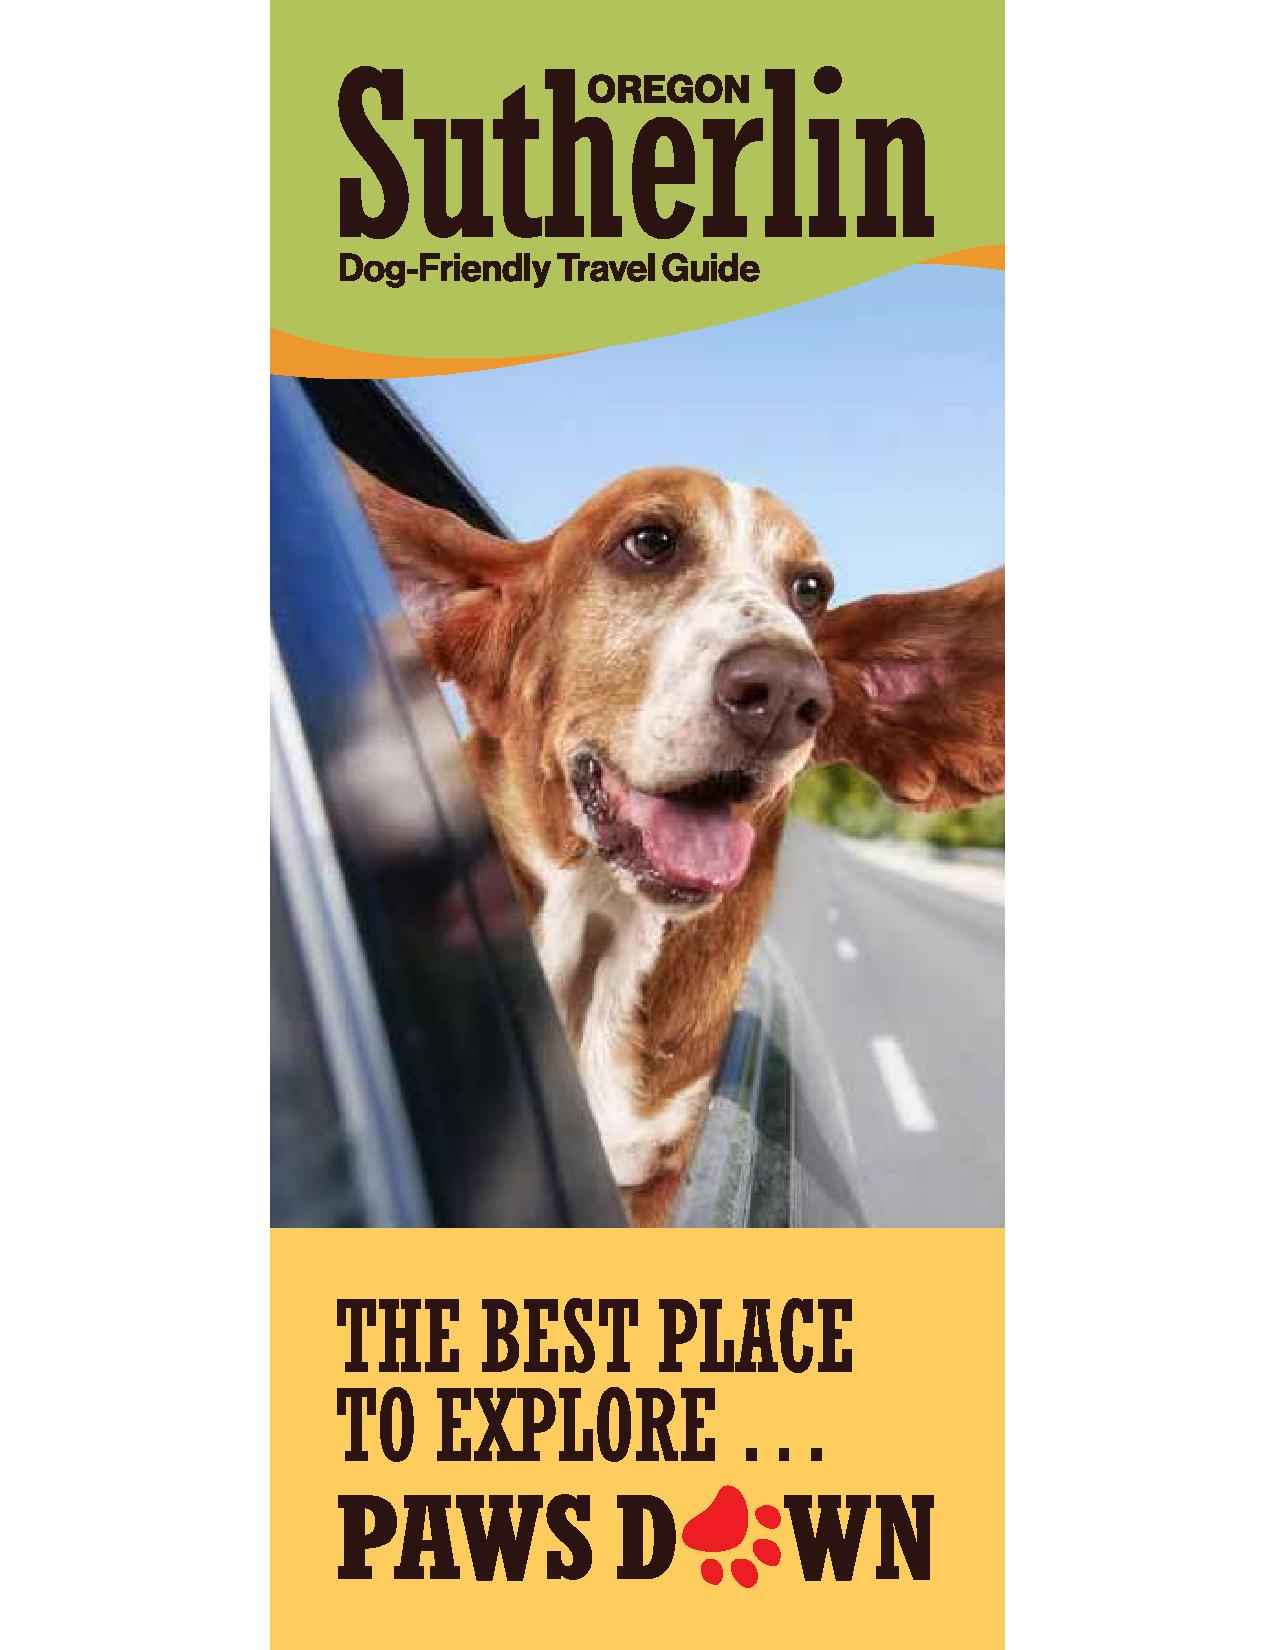 Dog-Friendly Travel Guide